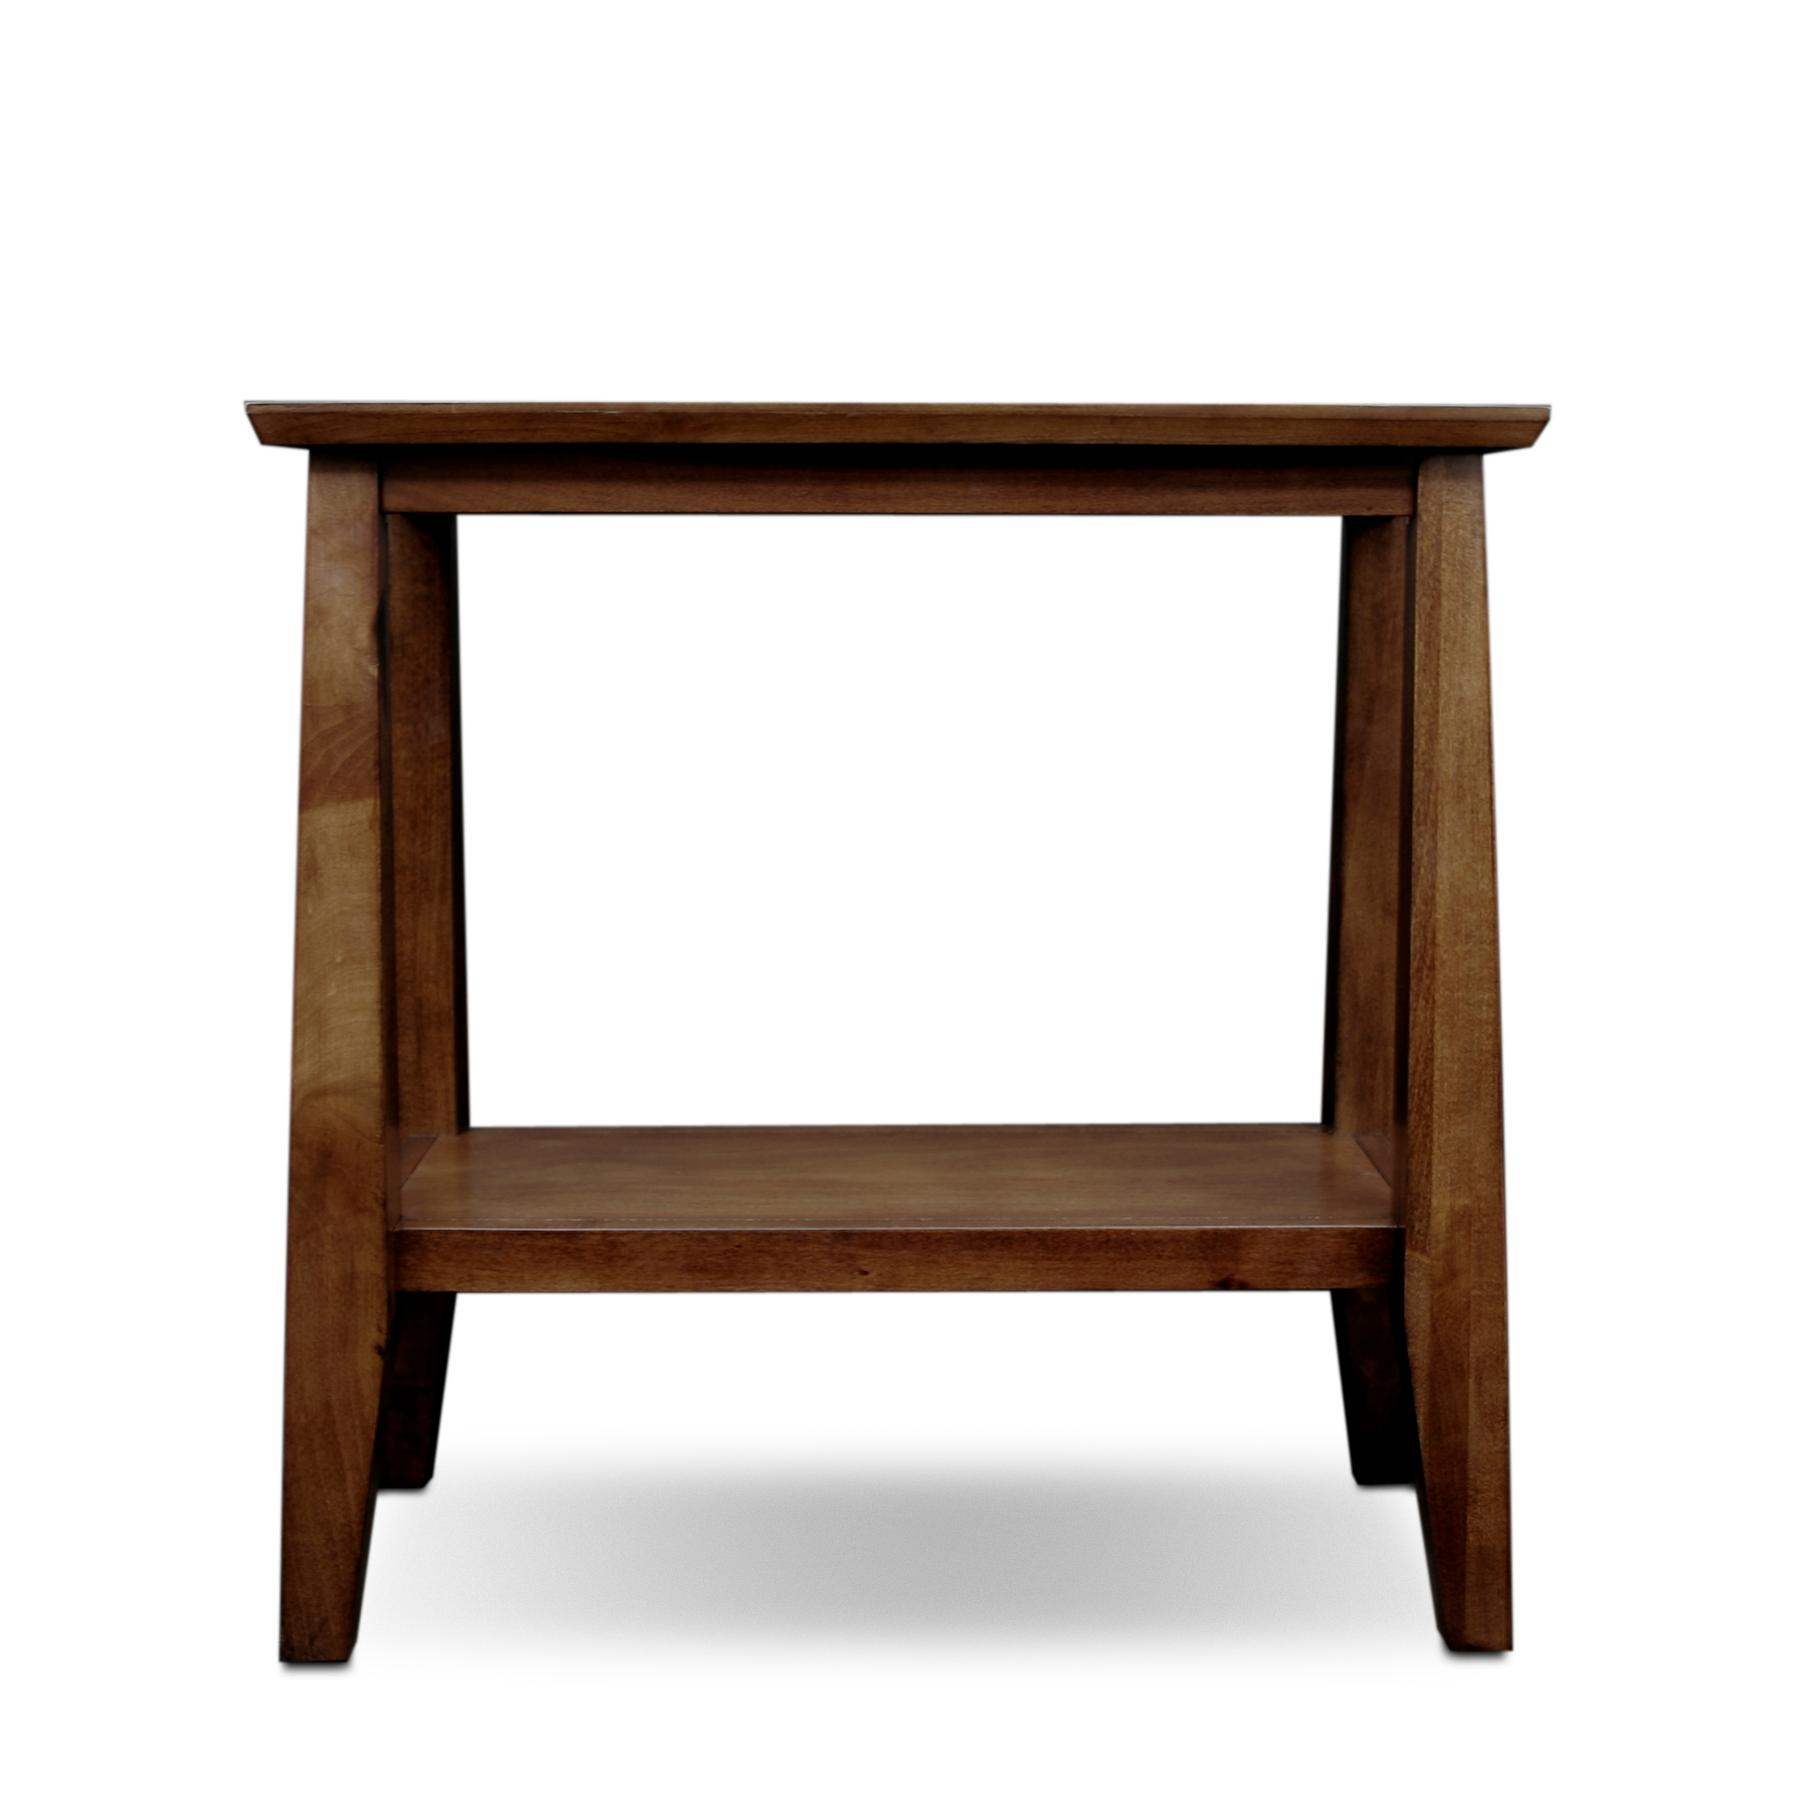 Kitchen Side Table: Amazon.com: Leick Delton Narrow Chairside End Table